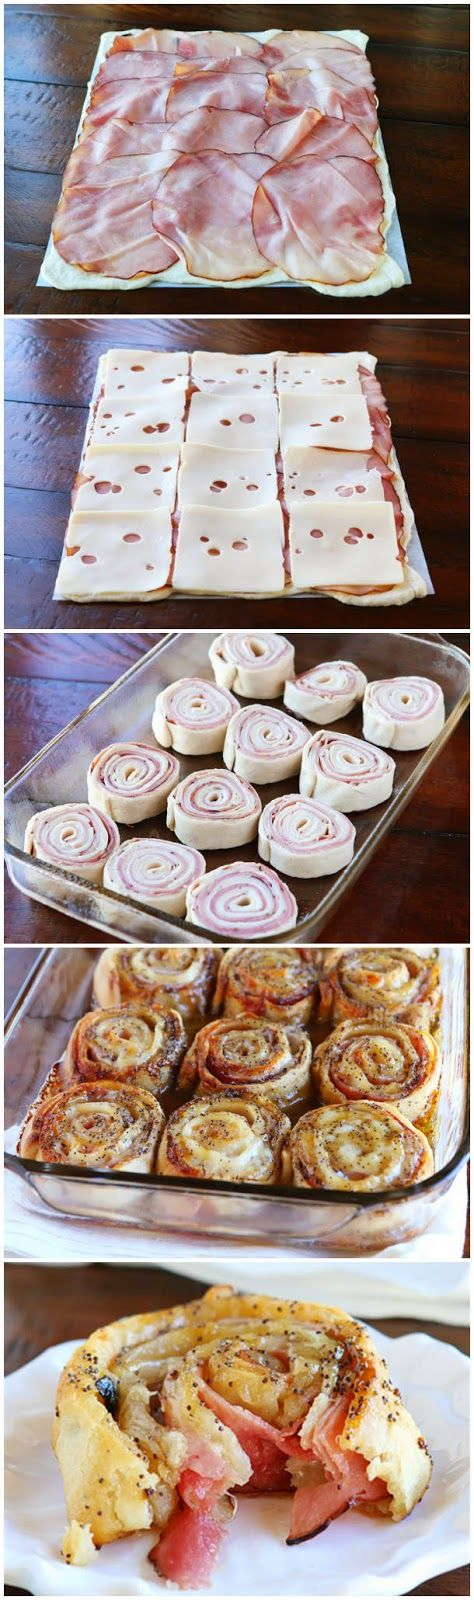 Hot Ham & Cheese Party Rolls | kitchenshares                                                                                                                                                                                 More